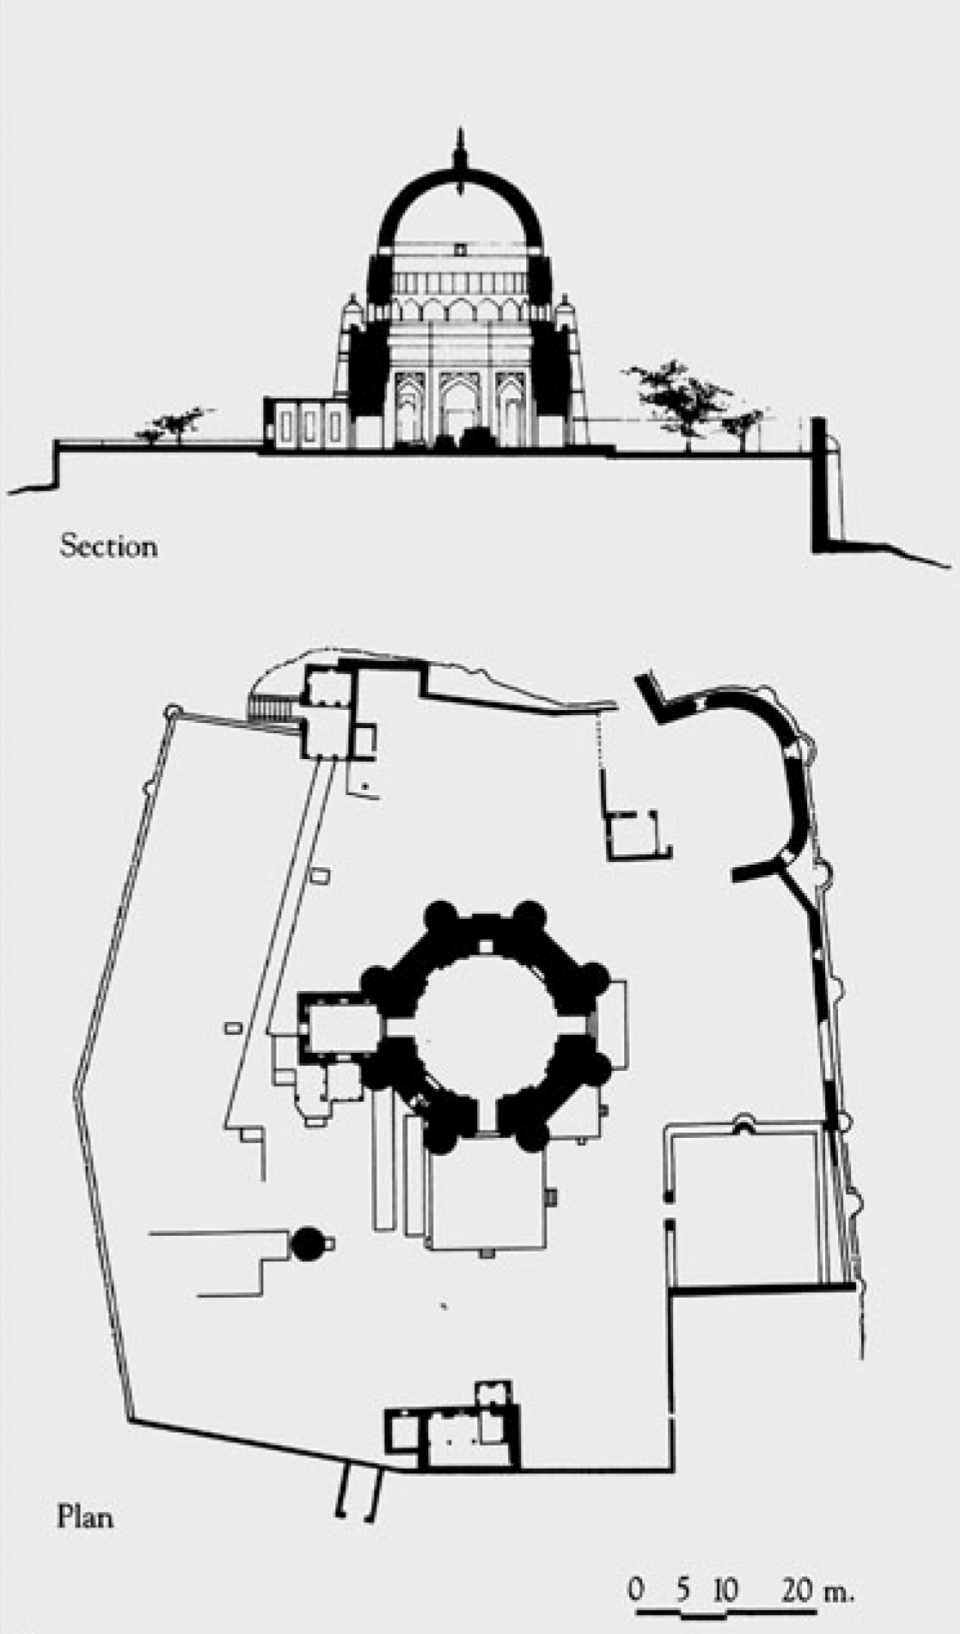 Section and Plan